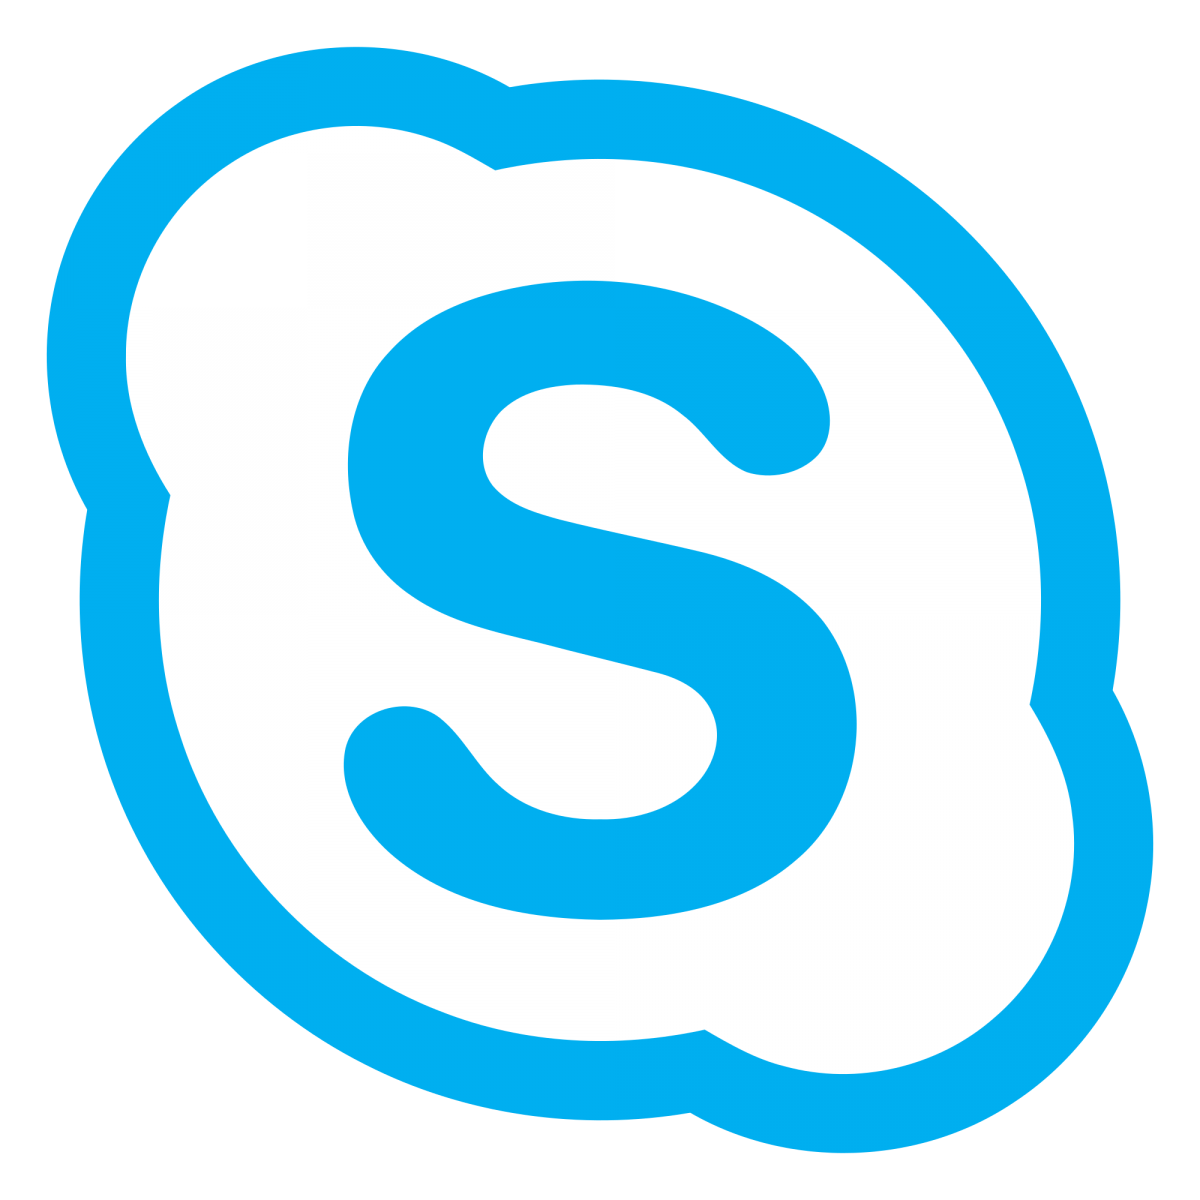 Office 365 help office of information technology skype for business biocorpaavc Images